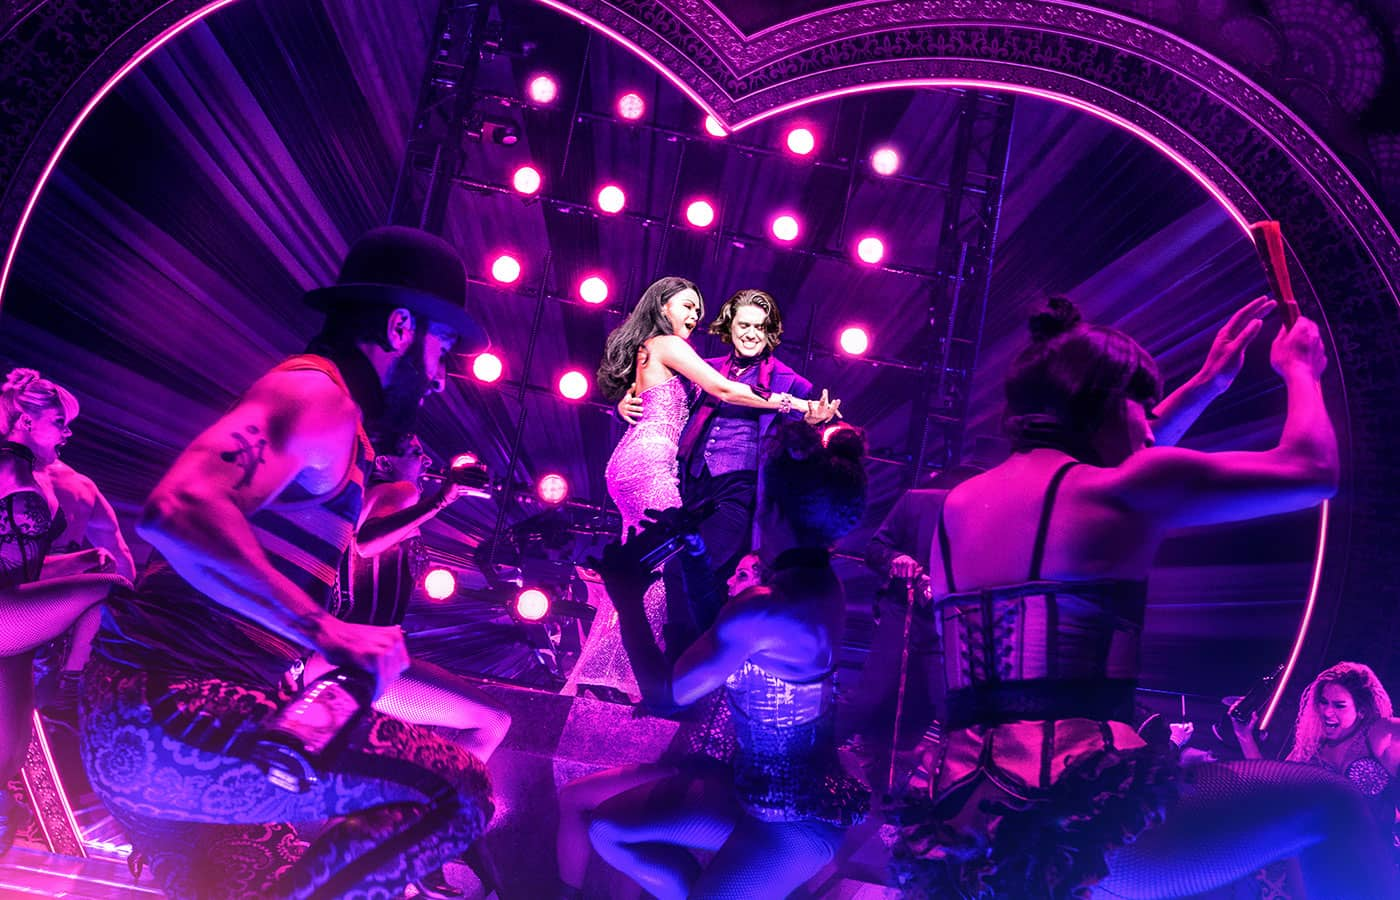 Moulin Rouge! The Musical on Broadway Tickets - The Moulin Rouge